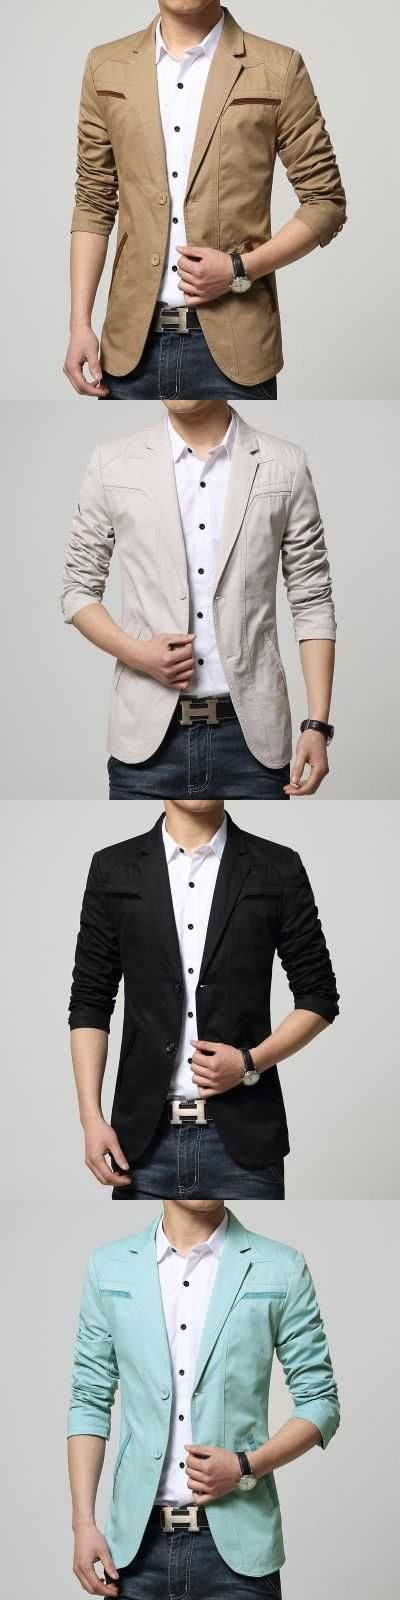 High Quality New 2016 Fashion Mens Cotton Blazer Men Suit Slim Fit Jacket Men'S Blazer Classic Blazer For Male Coat A3841